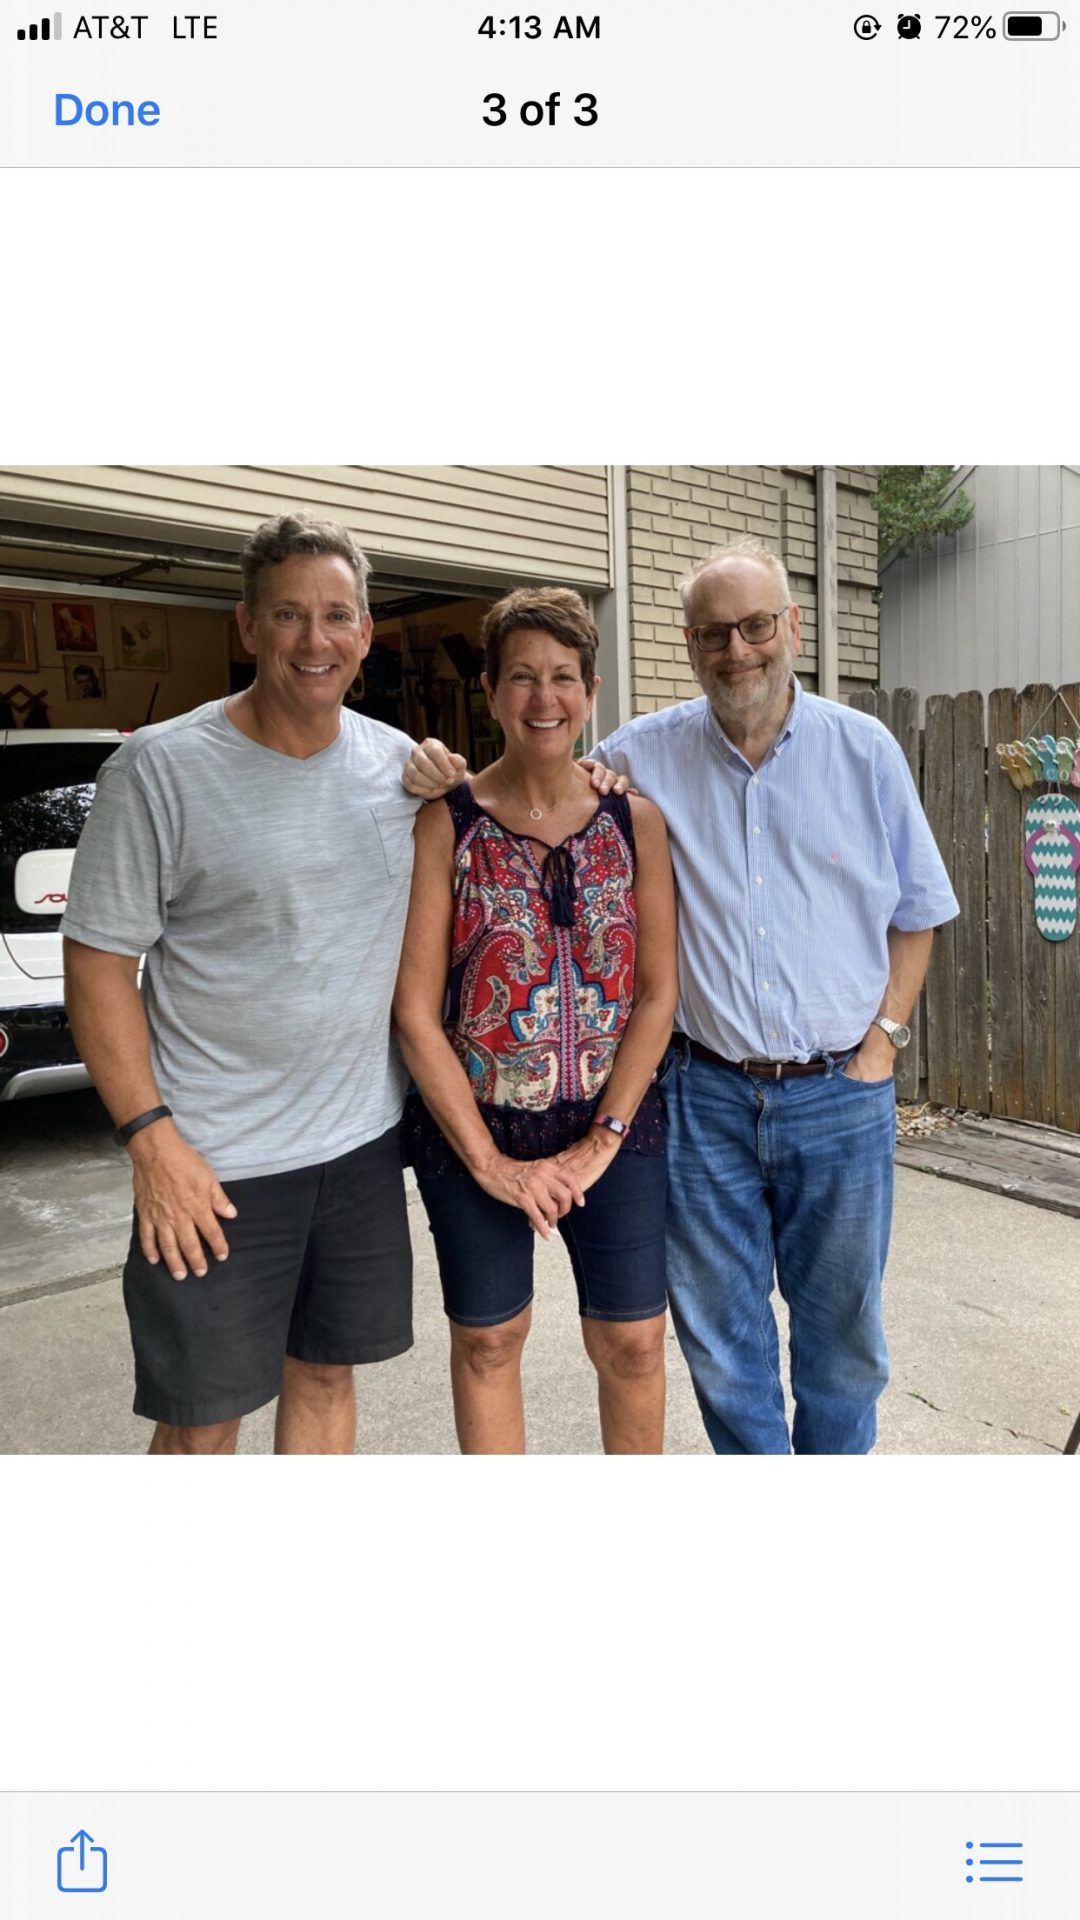 Last picture of Larry, Debbie and myself taken summer of 2020. Rest easy my brother (or as we would say bro)